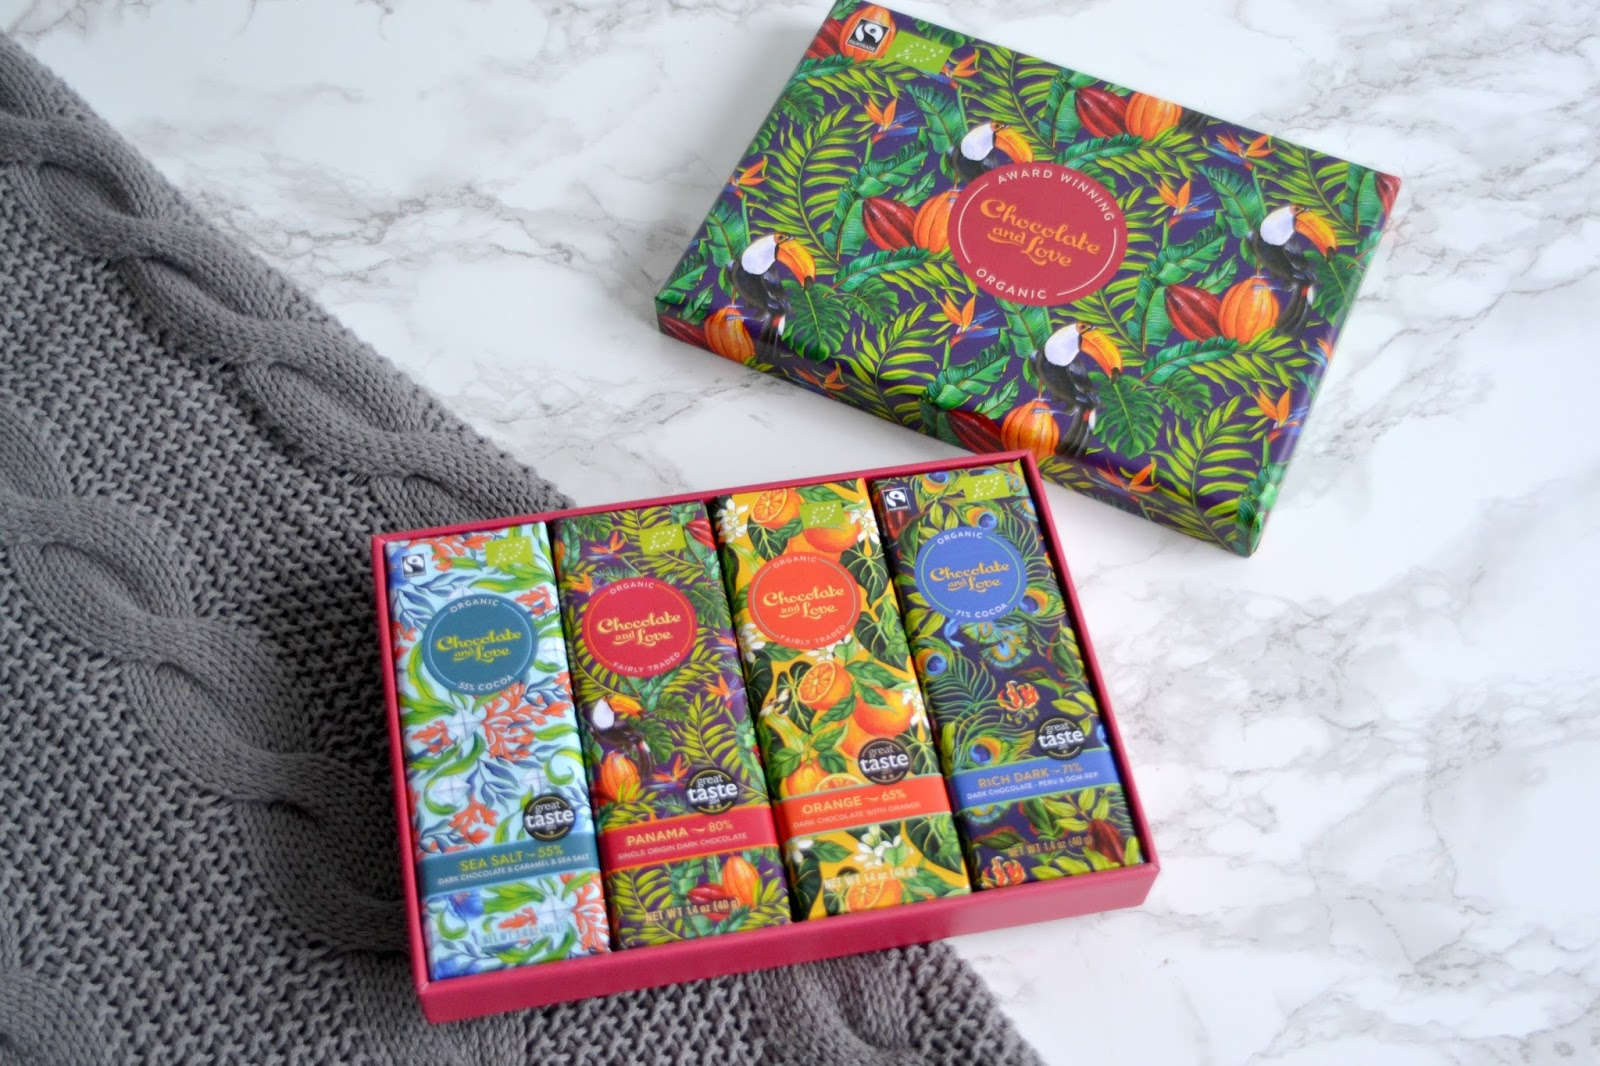 Luxury Fairtrade And Organic Chocolate From Chocolate And